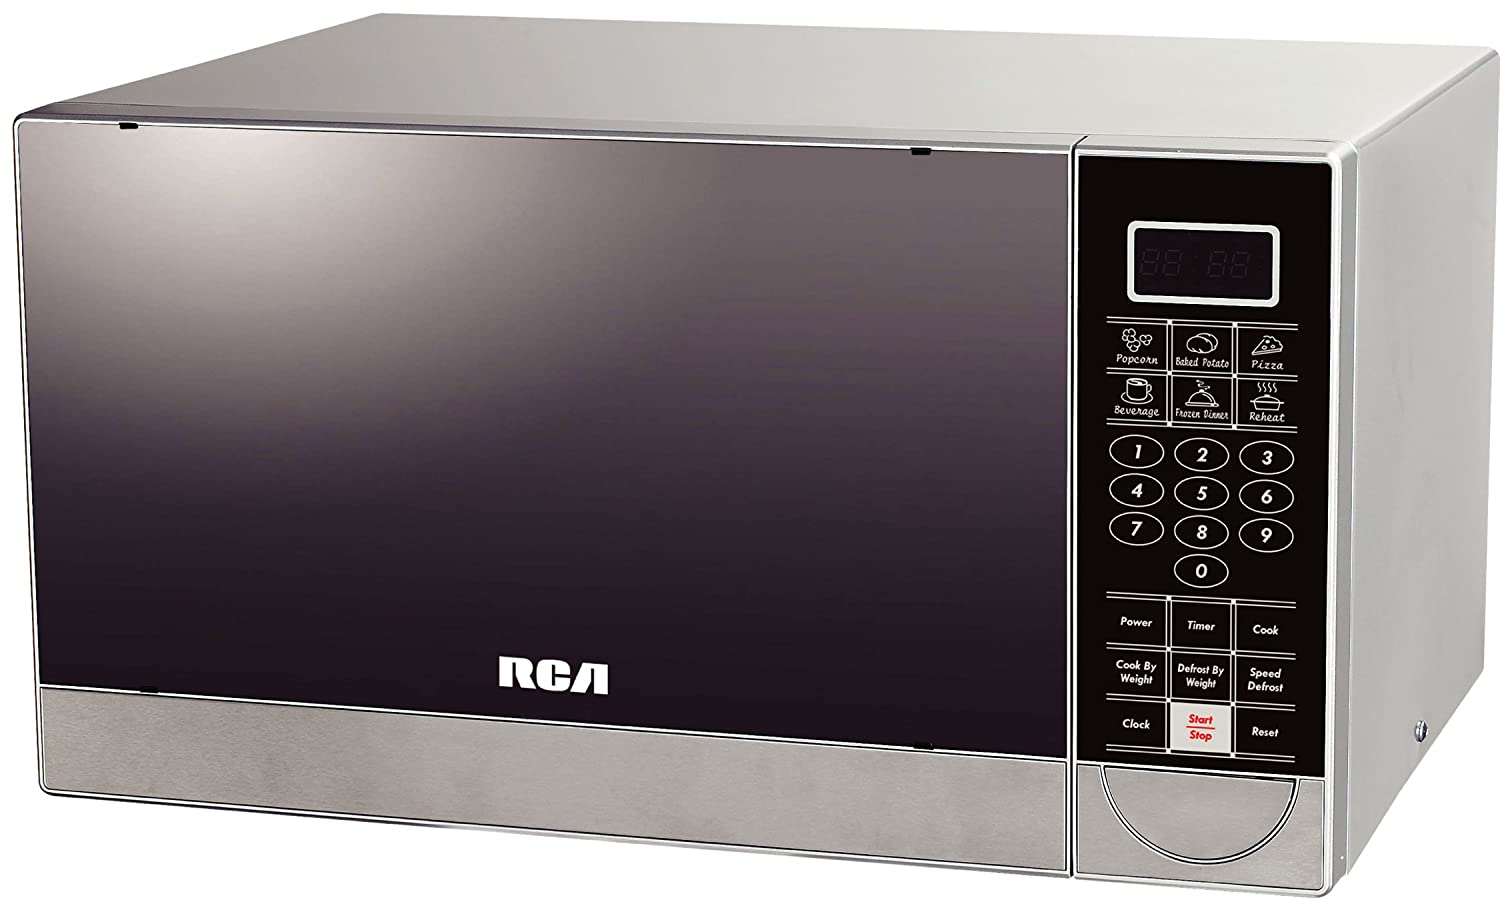 RCA 1.1 Cubic Feet Stainless Steel Microwave Oven Curtis International LTD RMW1182